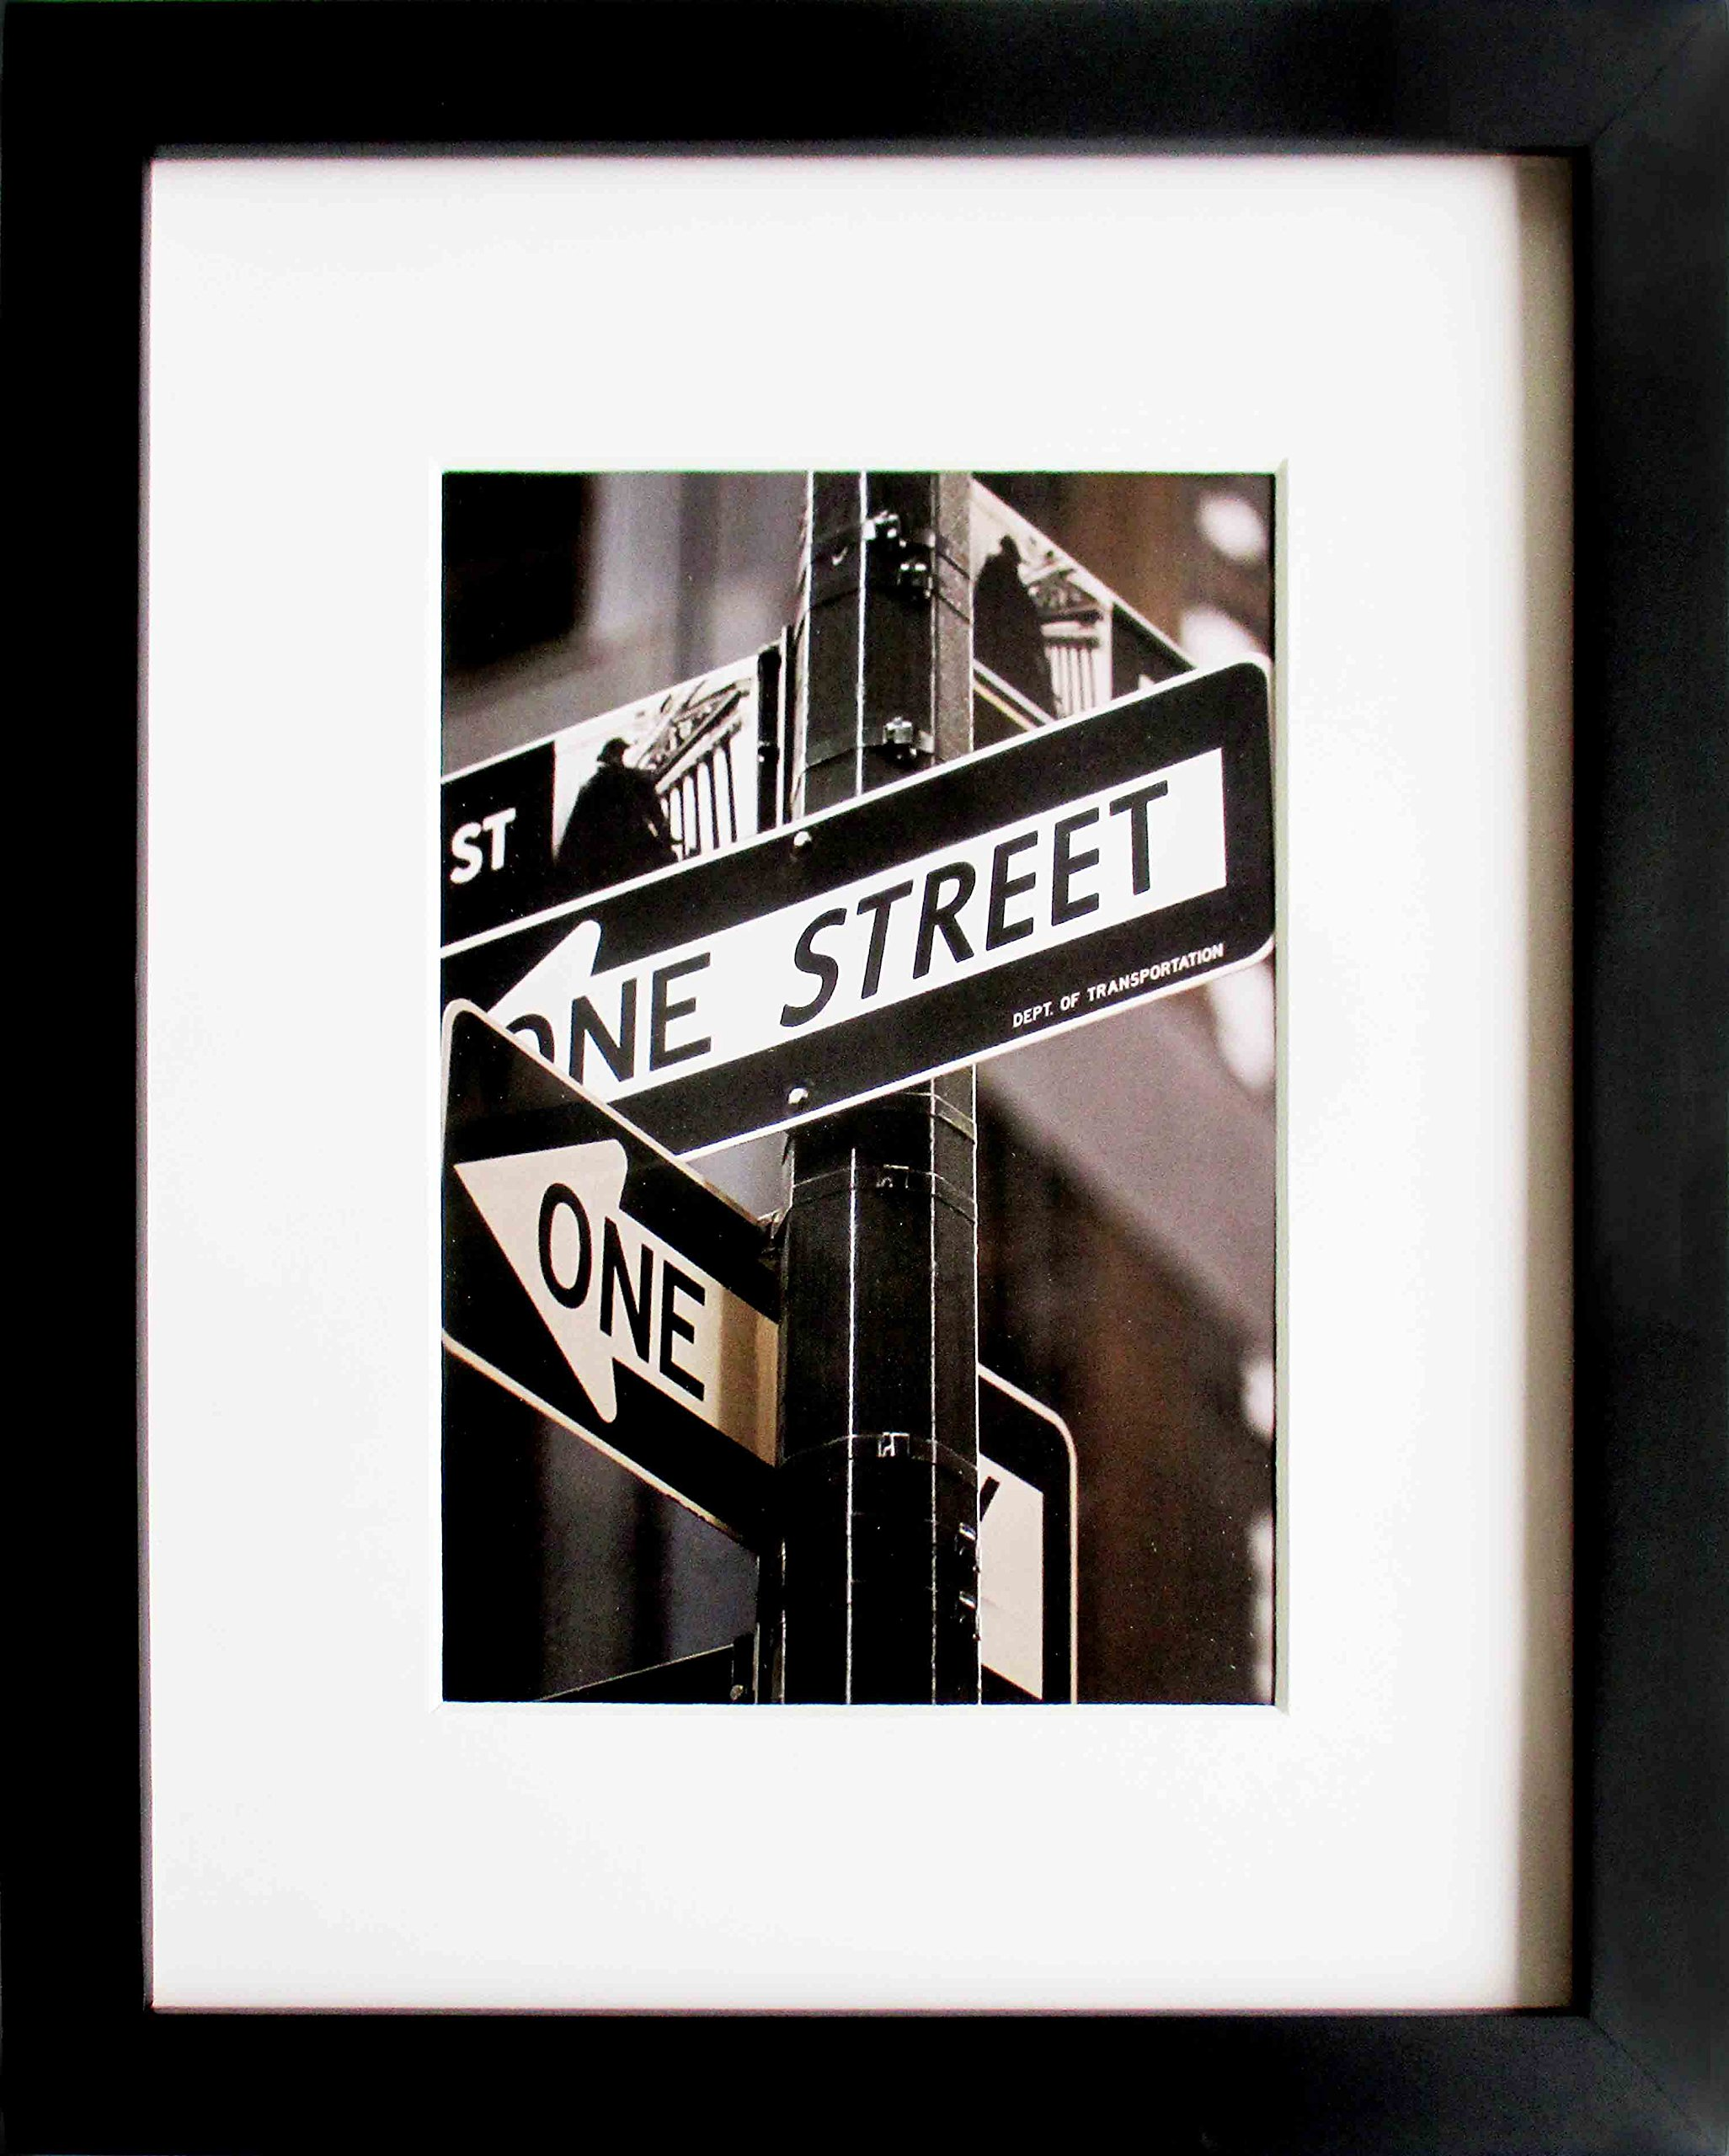 The Display Guys 20''x24'' Matte Black Pine Wood Photo Decorative Frame w/Photo Mat for 16''x20'' Photo and Collage Mat